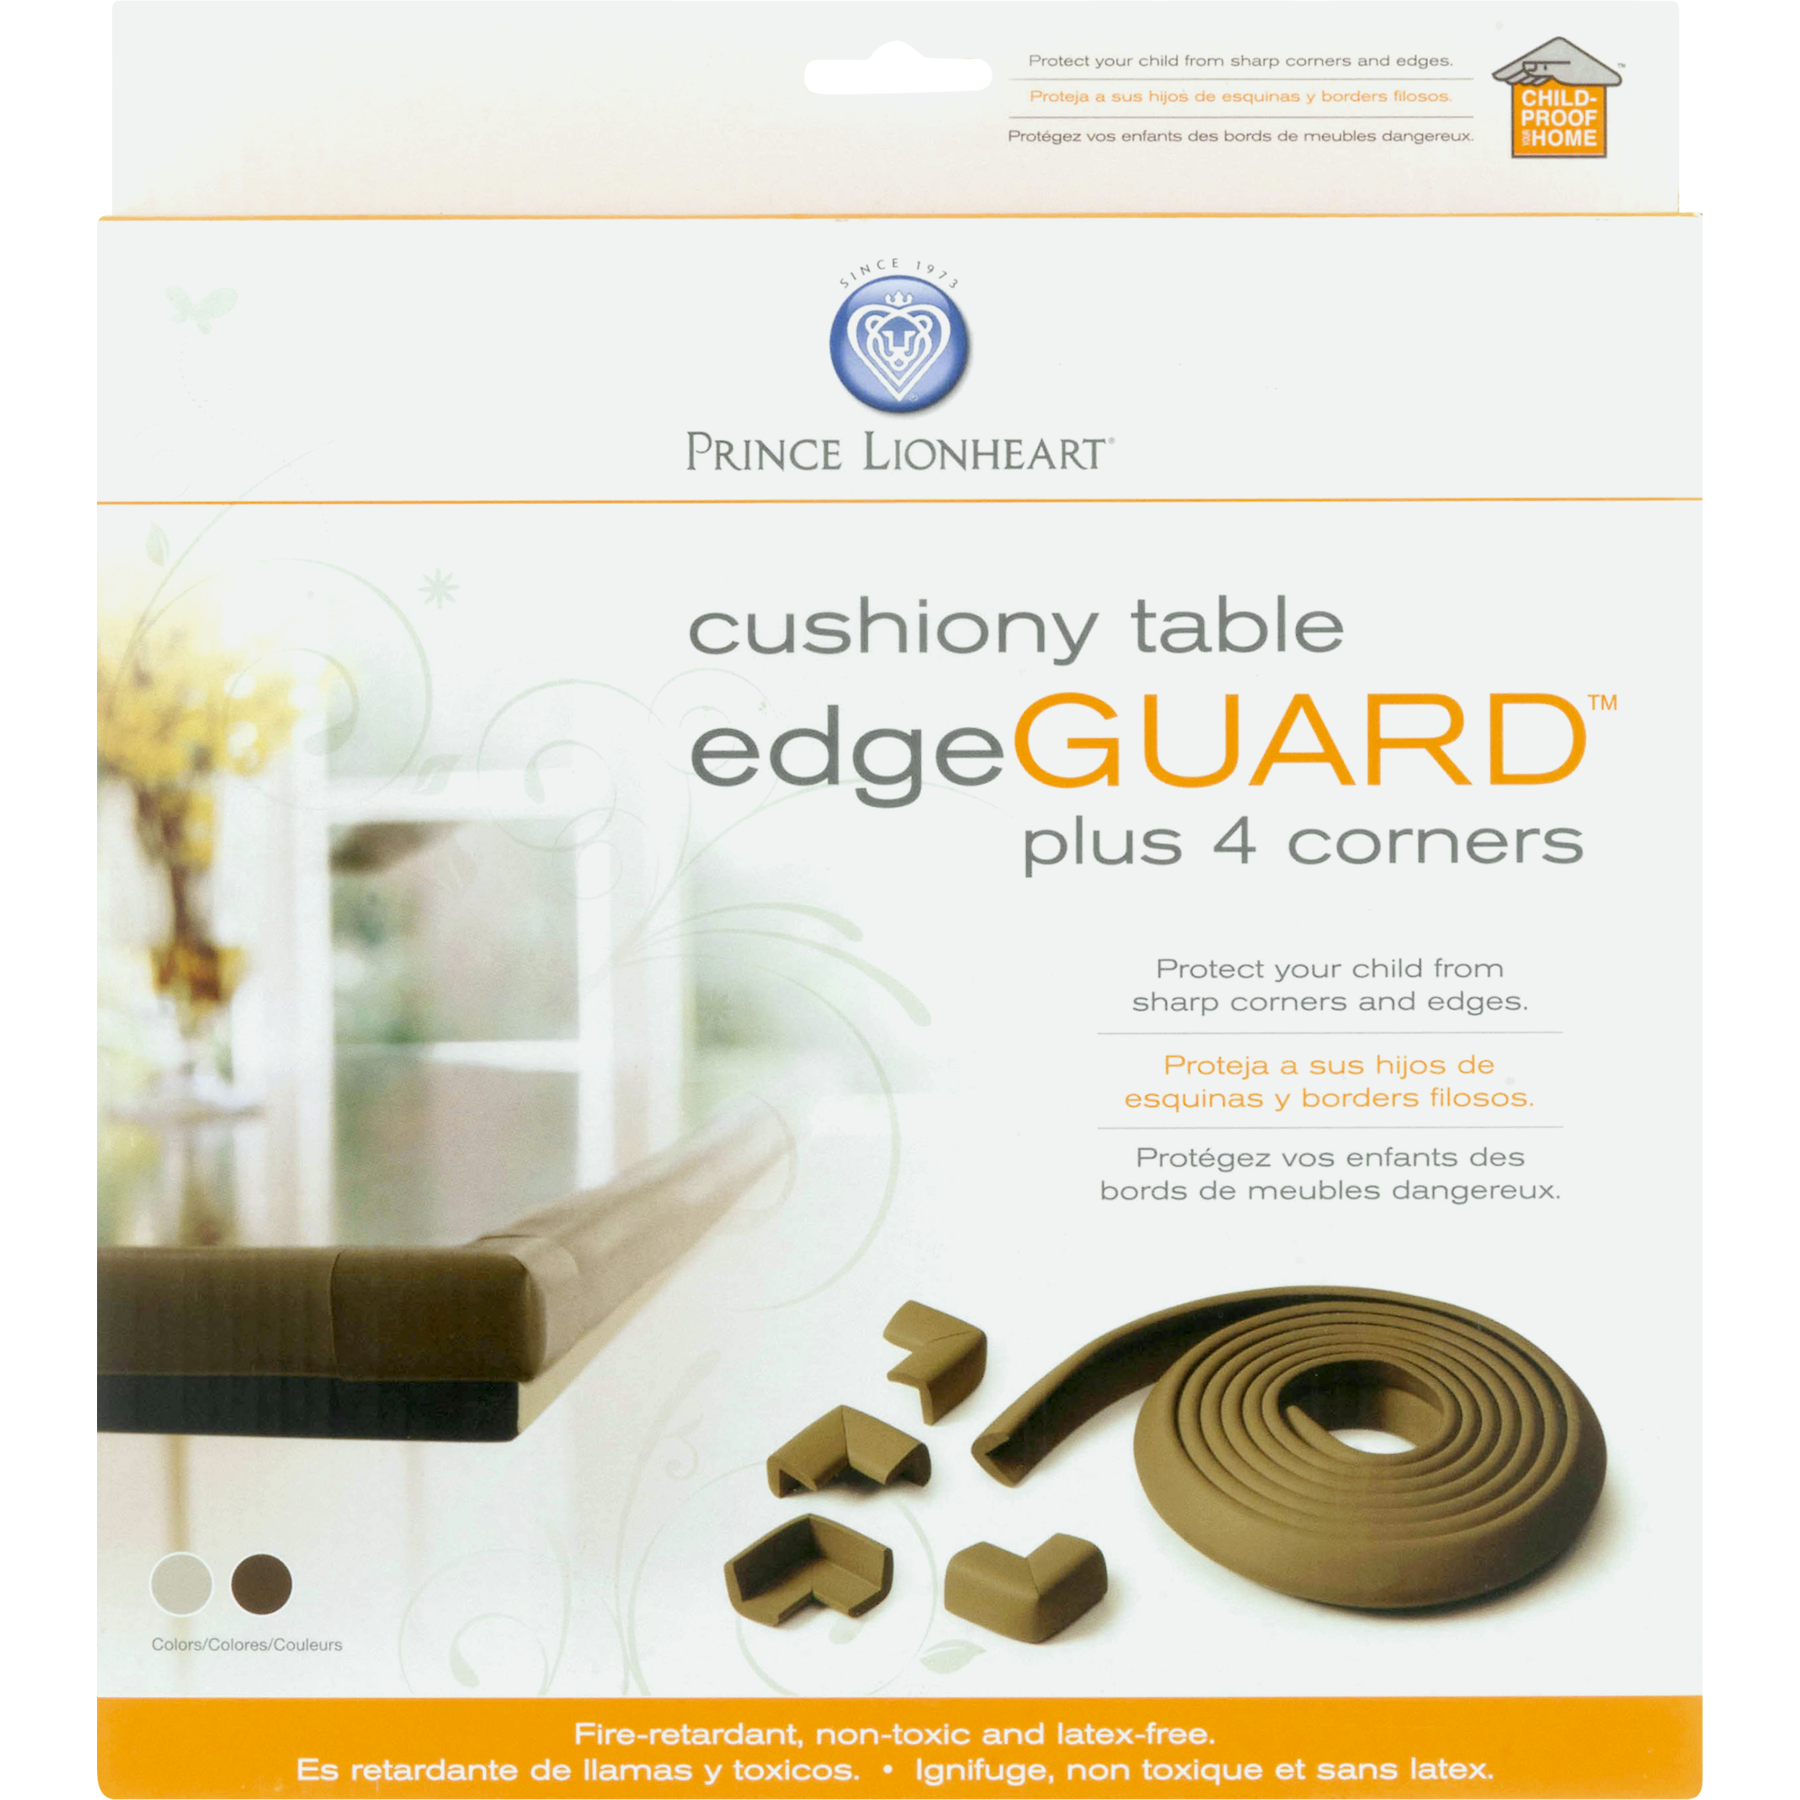 table edge guard. table edgeguard (w/4 corners) - neutral image 4 of 7 edge guard